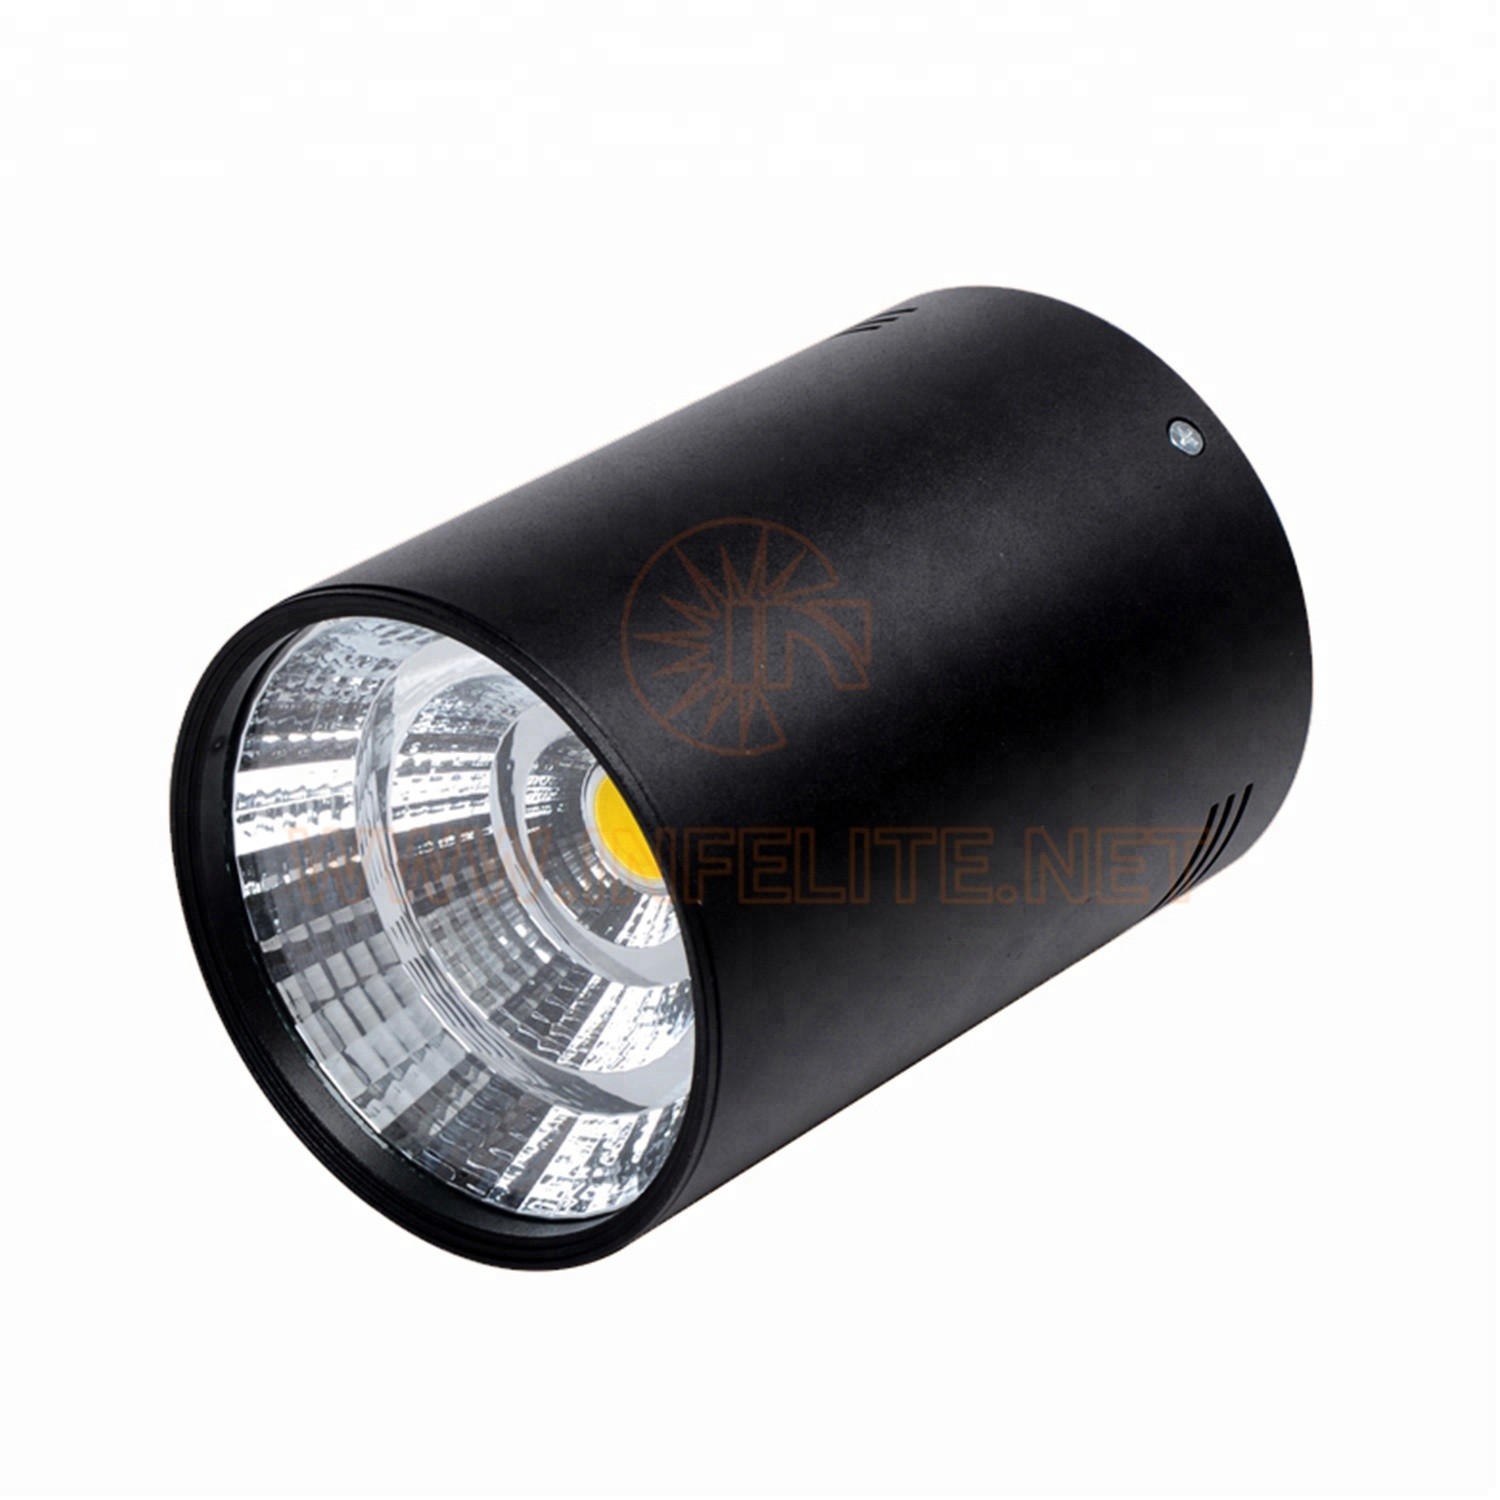 IN-DL204-20W Aluminum Surface Mounted COB LED Spot Ceilling Downlight Lamp 5W 7W 10W 15W 20W 30W